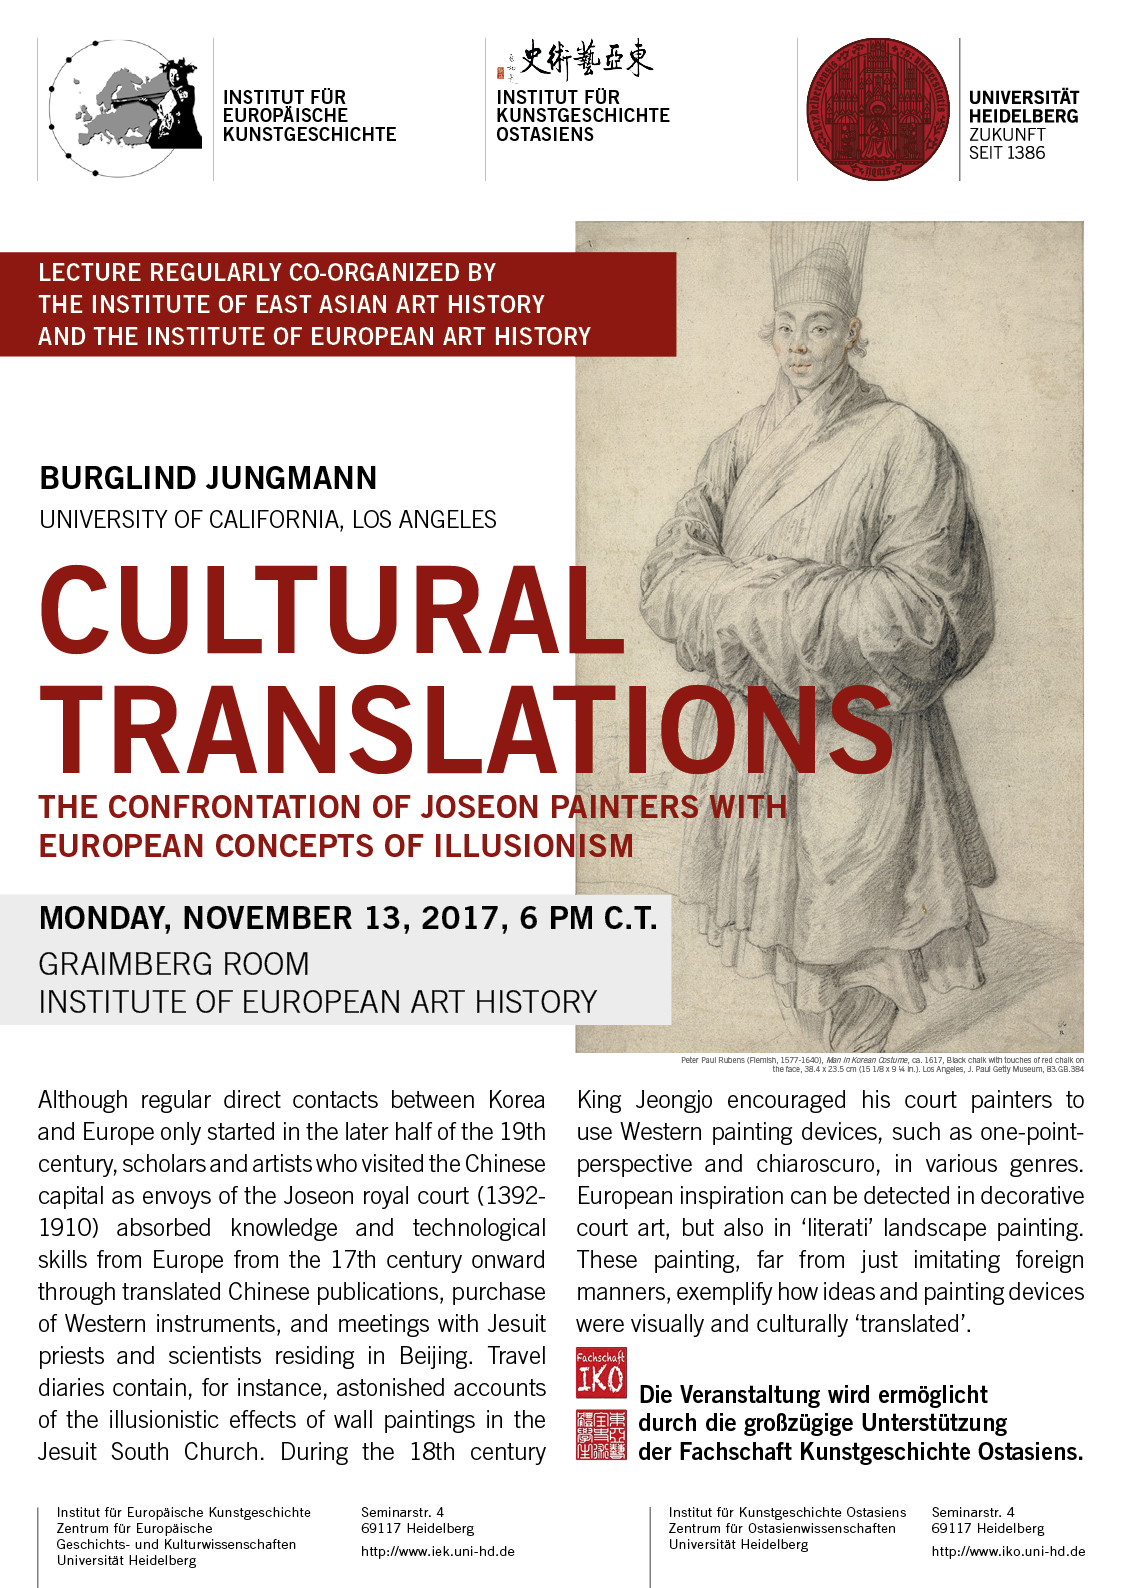 Burglind Jungmann: Cultural Translations: The Confrontation of Joseon Painters with European Concepts of Illusionism